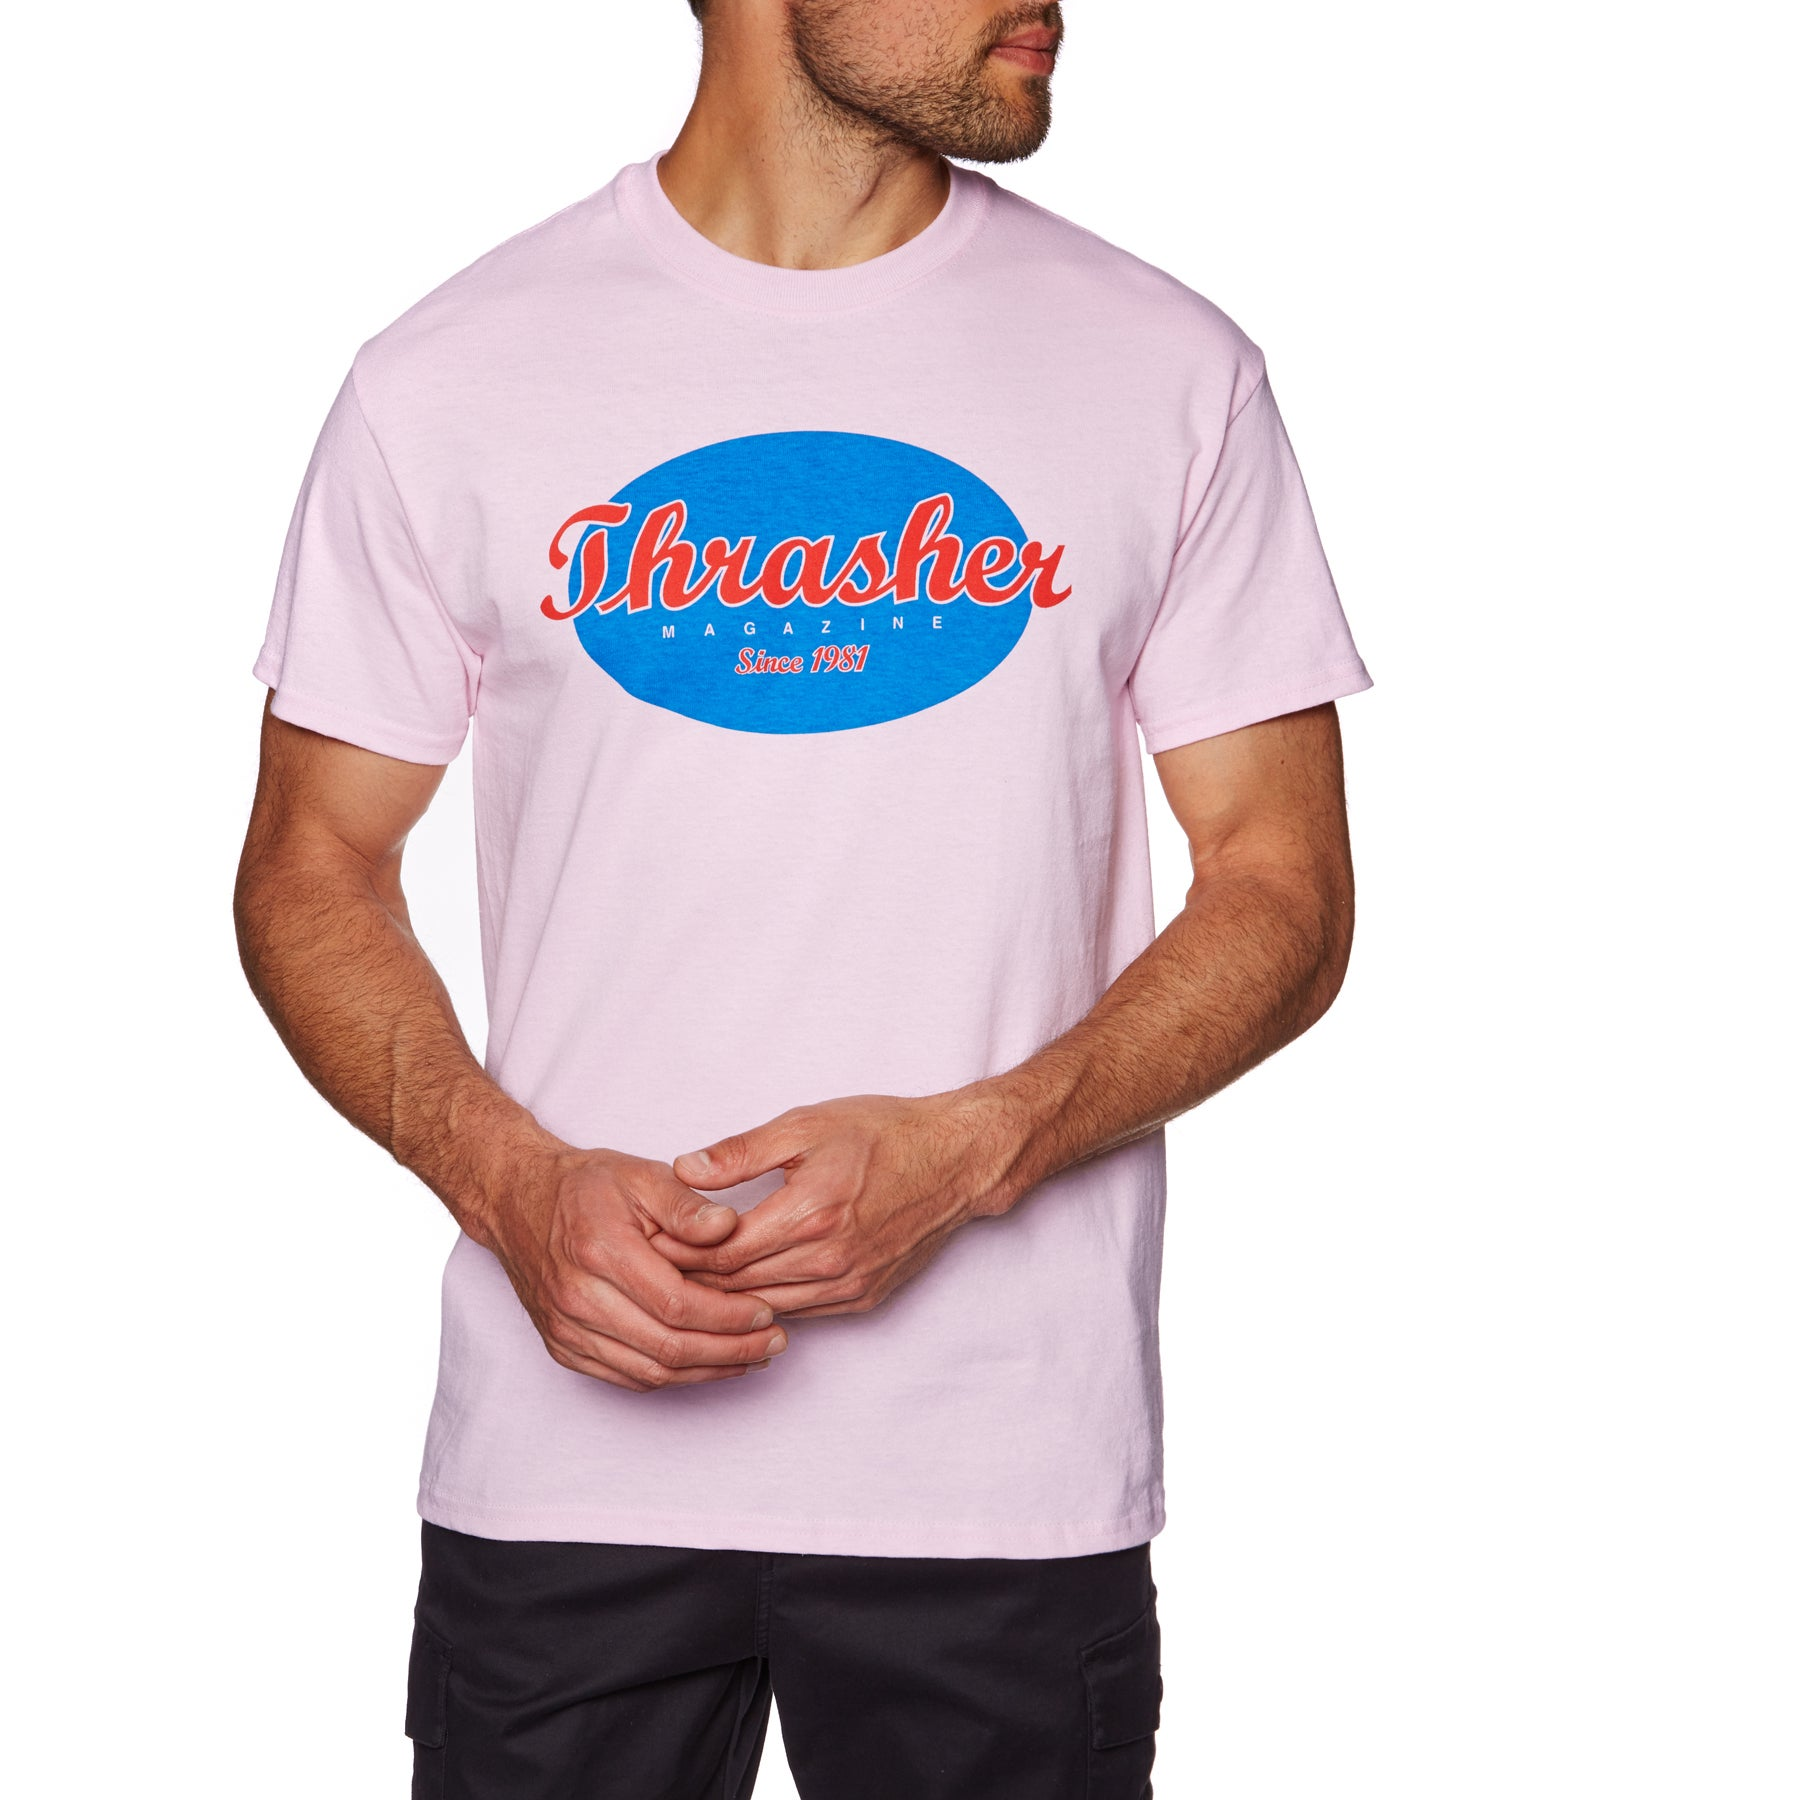 Thrasher Oval Short Sleeve T-Shirt - Pink